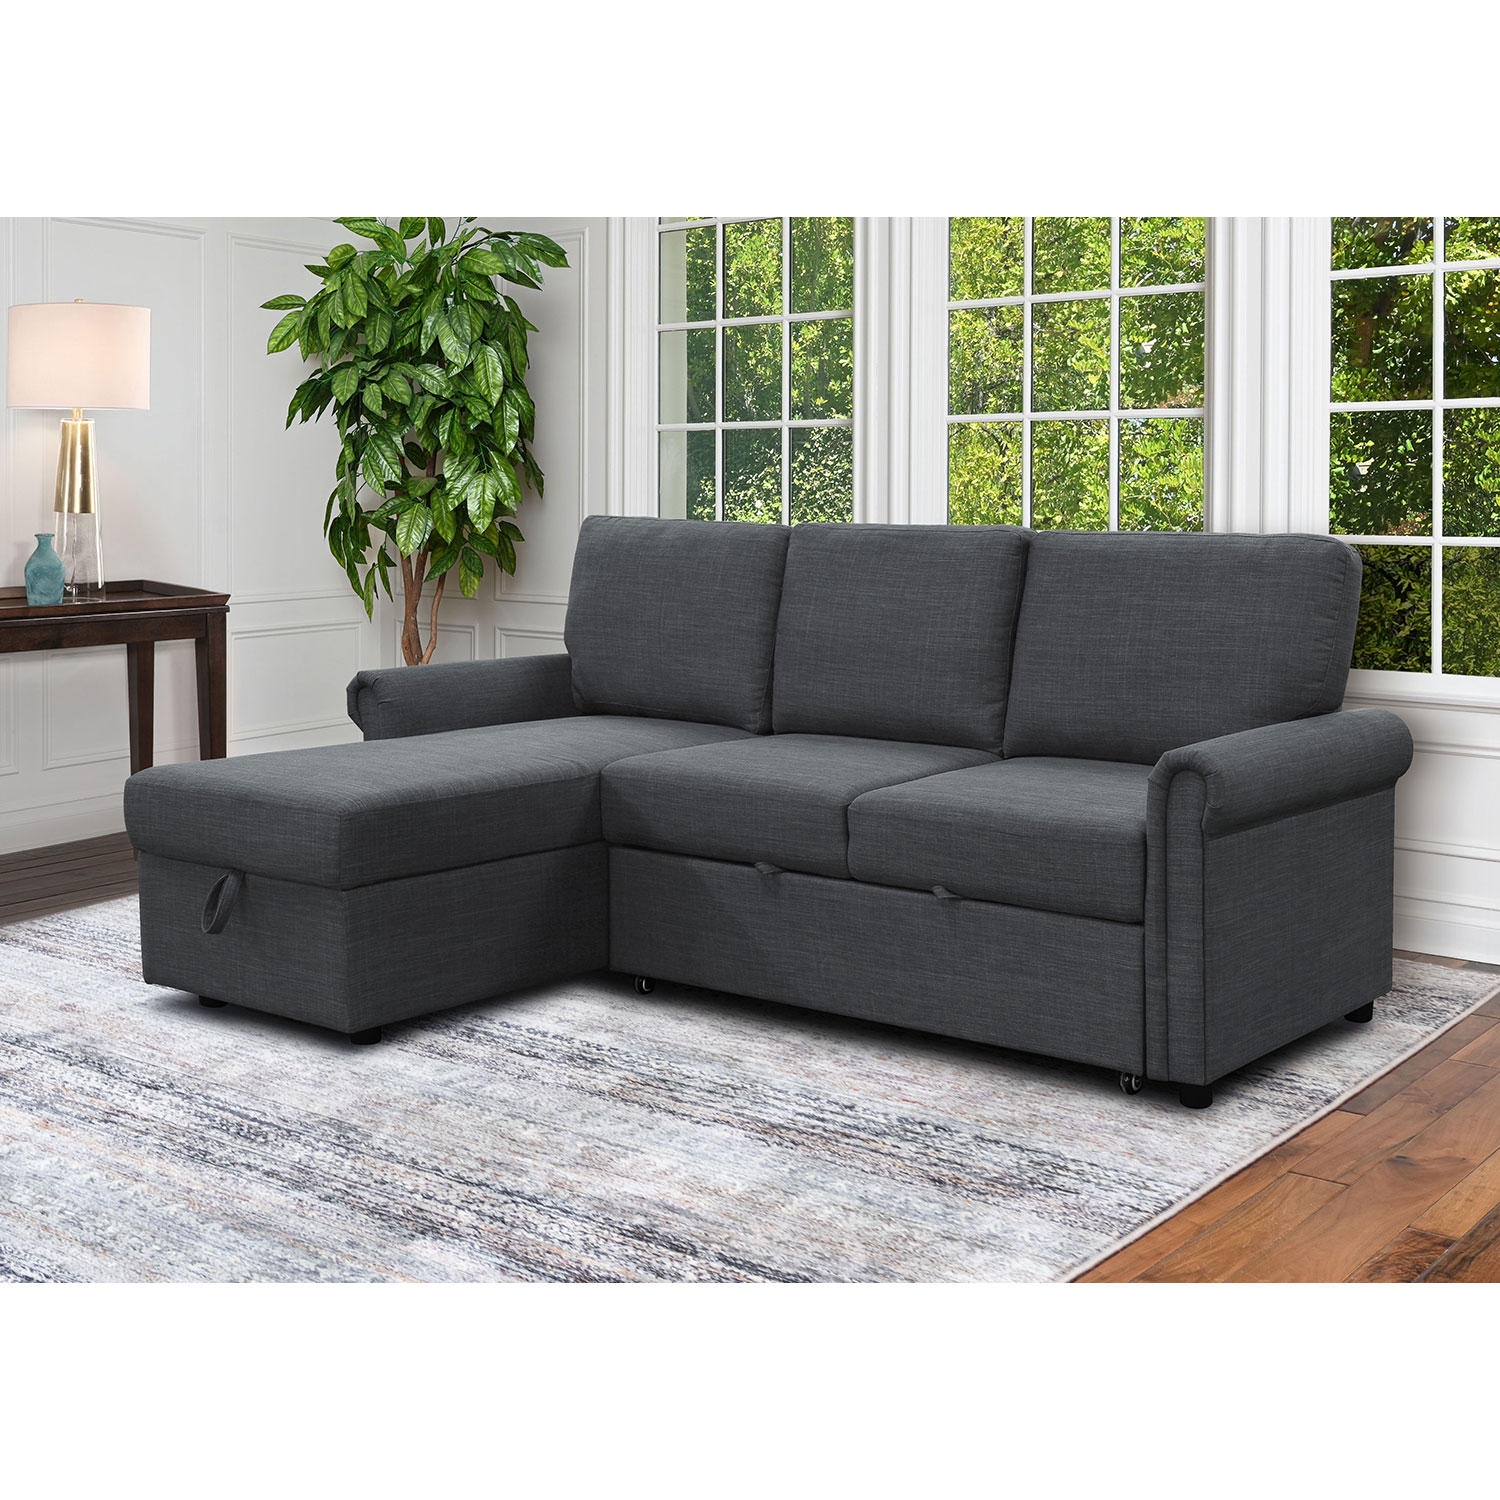 Abbyson Living Hamilton Reversible Storage Sectional with Pullout Bed